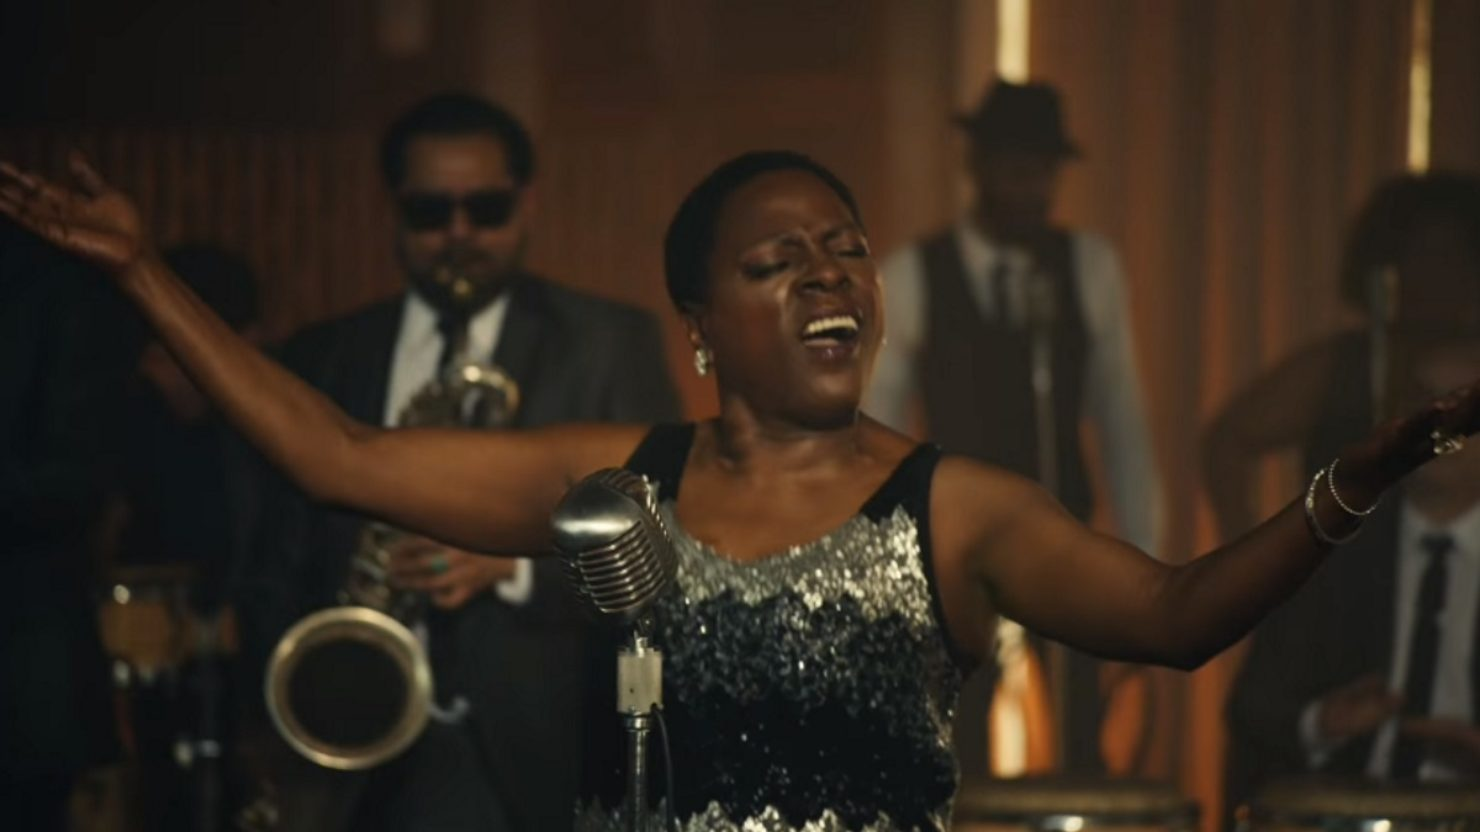 Sharon jones the dap kings cover 39 midnight rider 39 by for Cover jones motor company